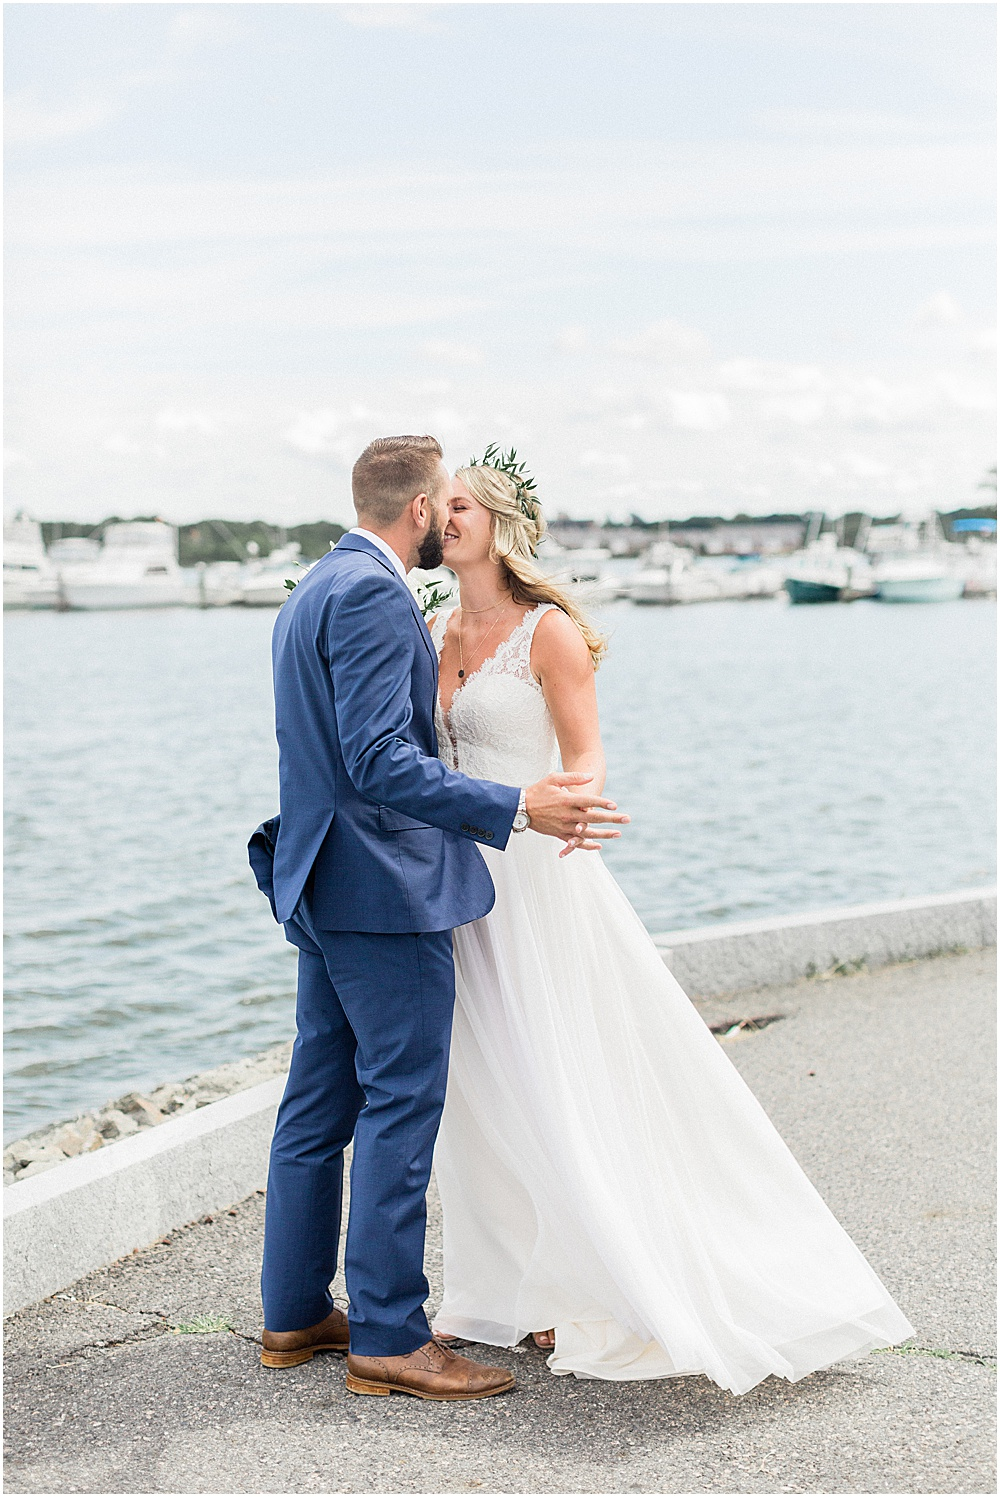 boston_harbor_distillery_kelly_jake_tented_backyard_engagement_session_cape_cod_massachusetts_boston_wedding_photographer_meredith_jane_photography_photo_0775.jpg